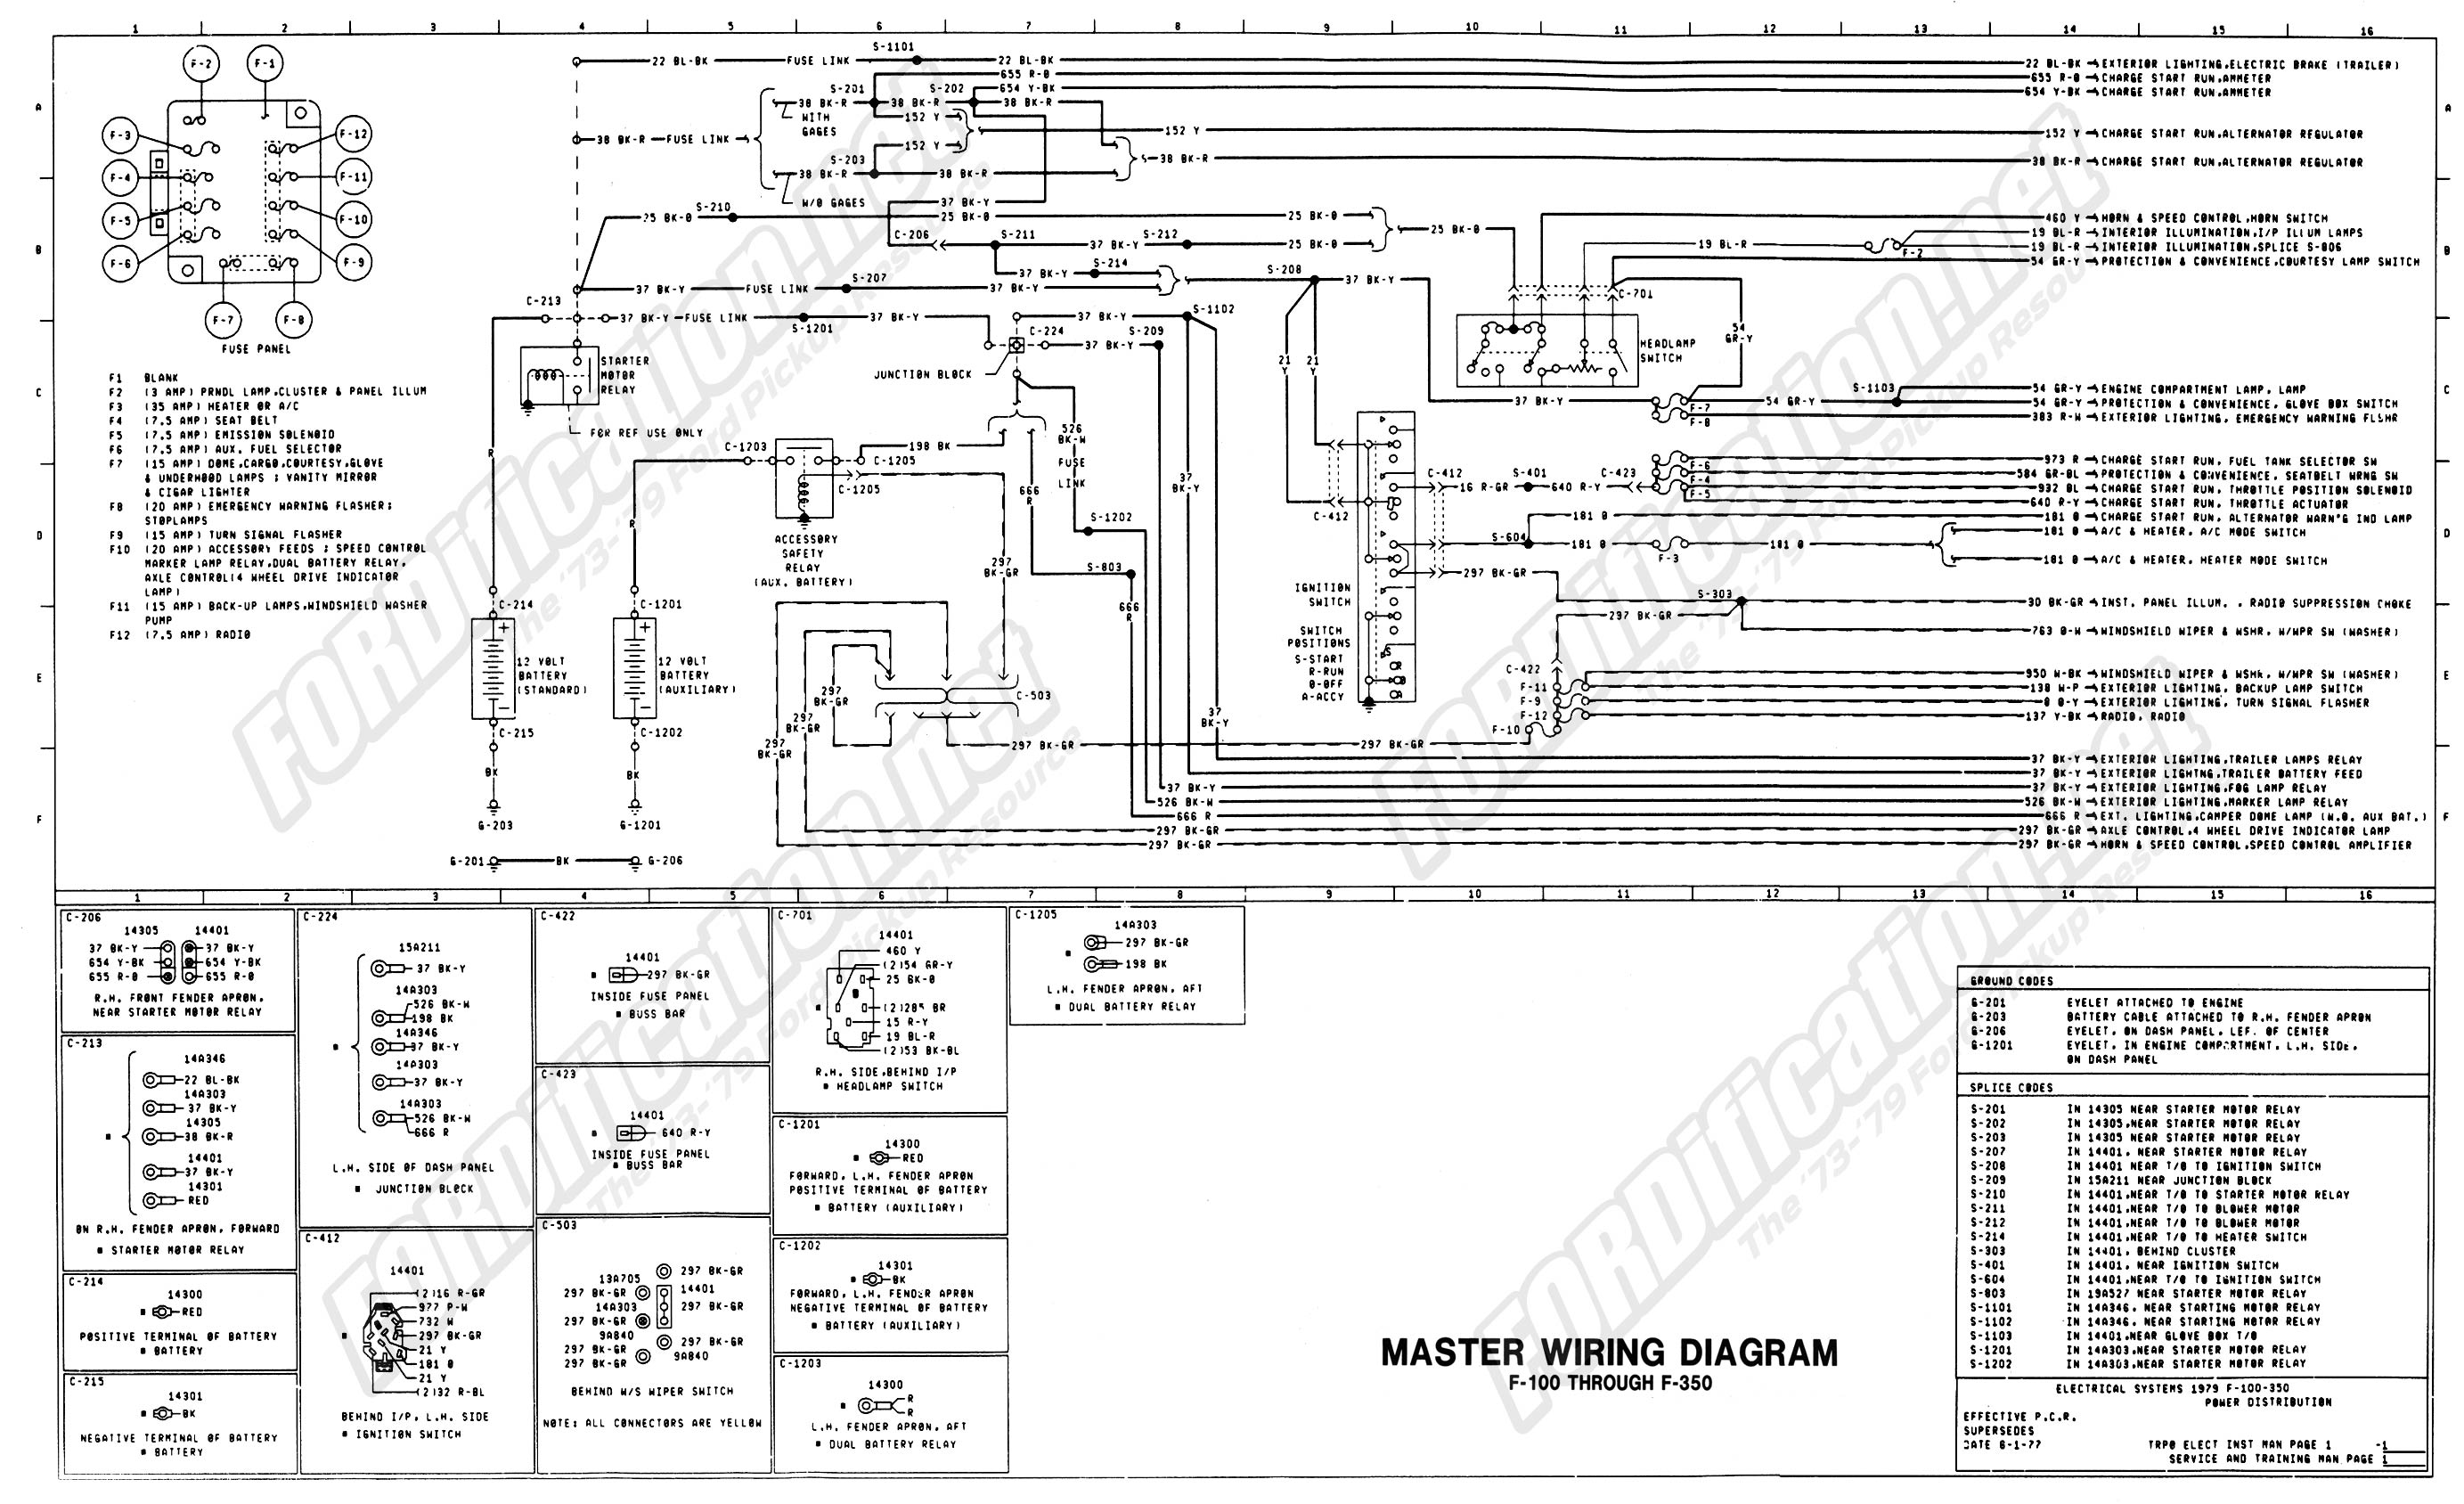 Mercedes Benz Ignition Wiring Diagram on ford ignition wiring diagram, chevy ignition wiring diagram, gmc ignition wiring diagram, freightliner ignition wiring diagram, hino ignition wiring diagram, evinrude ignition wiring diagram, subaru ignition wiring diagram, honda ignition wiring diagram, toyota ignition wiring diagram, vw ignition wiring diagram, dodge ignition wiring diagram, mopar ignition wiring diagram, harley-davidson ignition wiring diagram, datsun ignition wiring diagram, gm ignition wiring diagram, willys ignition wiring diagram, kawasaki ignition wiring diagram, john deere ignition wiring diagram, chevrolet ignition wiring diagram, international ignition wiring diagram,